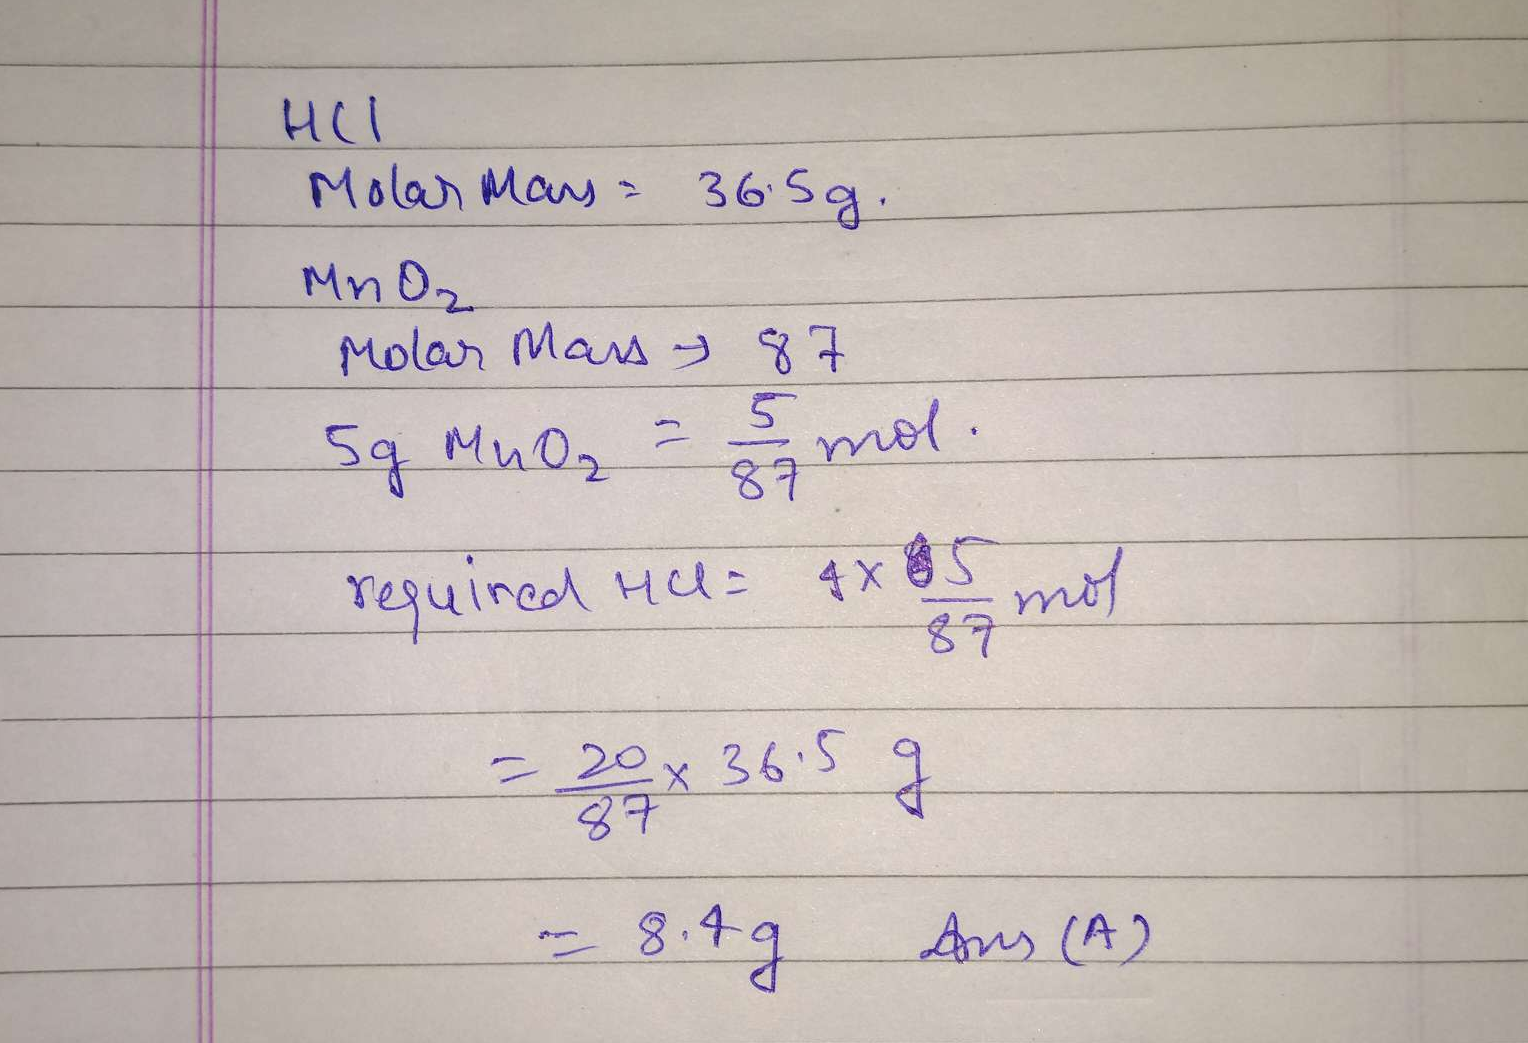 Chlorine is prepared in the laboratory by treating manganese dioxide (MnO2) with aqueous hydrochloric acid according to the reaction 4HCl(aq)+MnO2(s)→2H2O(ℓ)+MnCl2(aq)+Cl2(g) How many grams of HCl react with 5.0g of manganese dioxide?